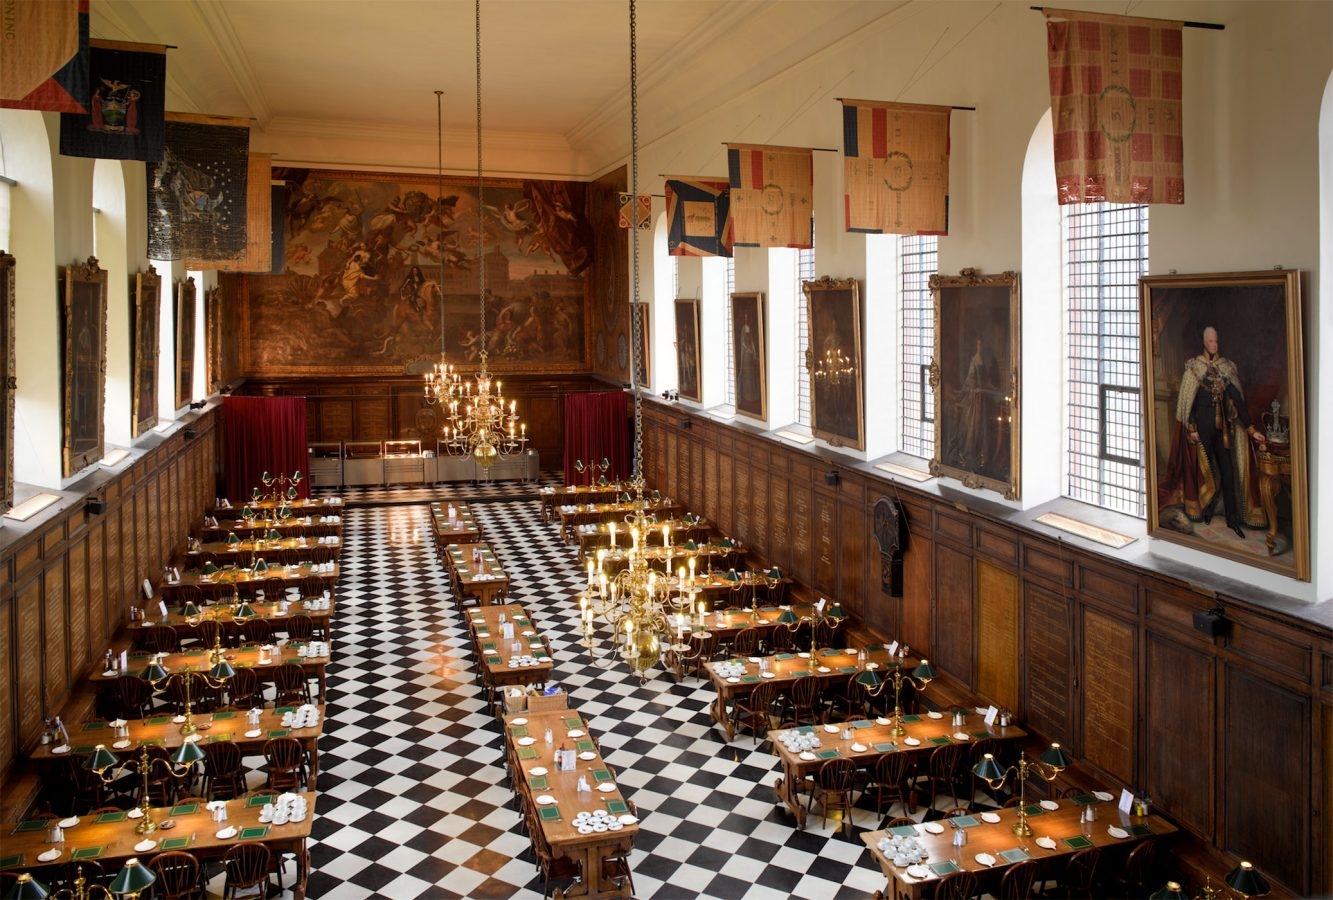 The Royal Hospital Chelsea The Great Hall